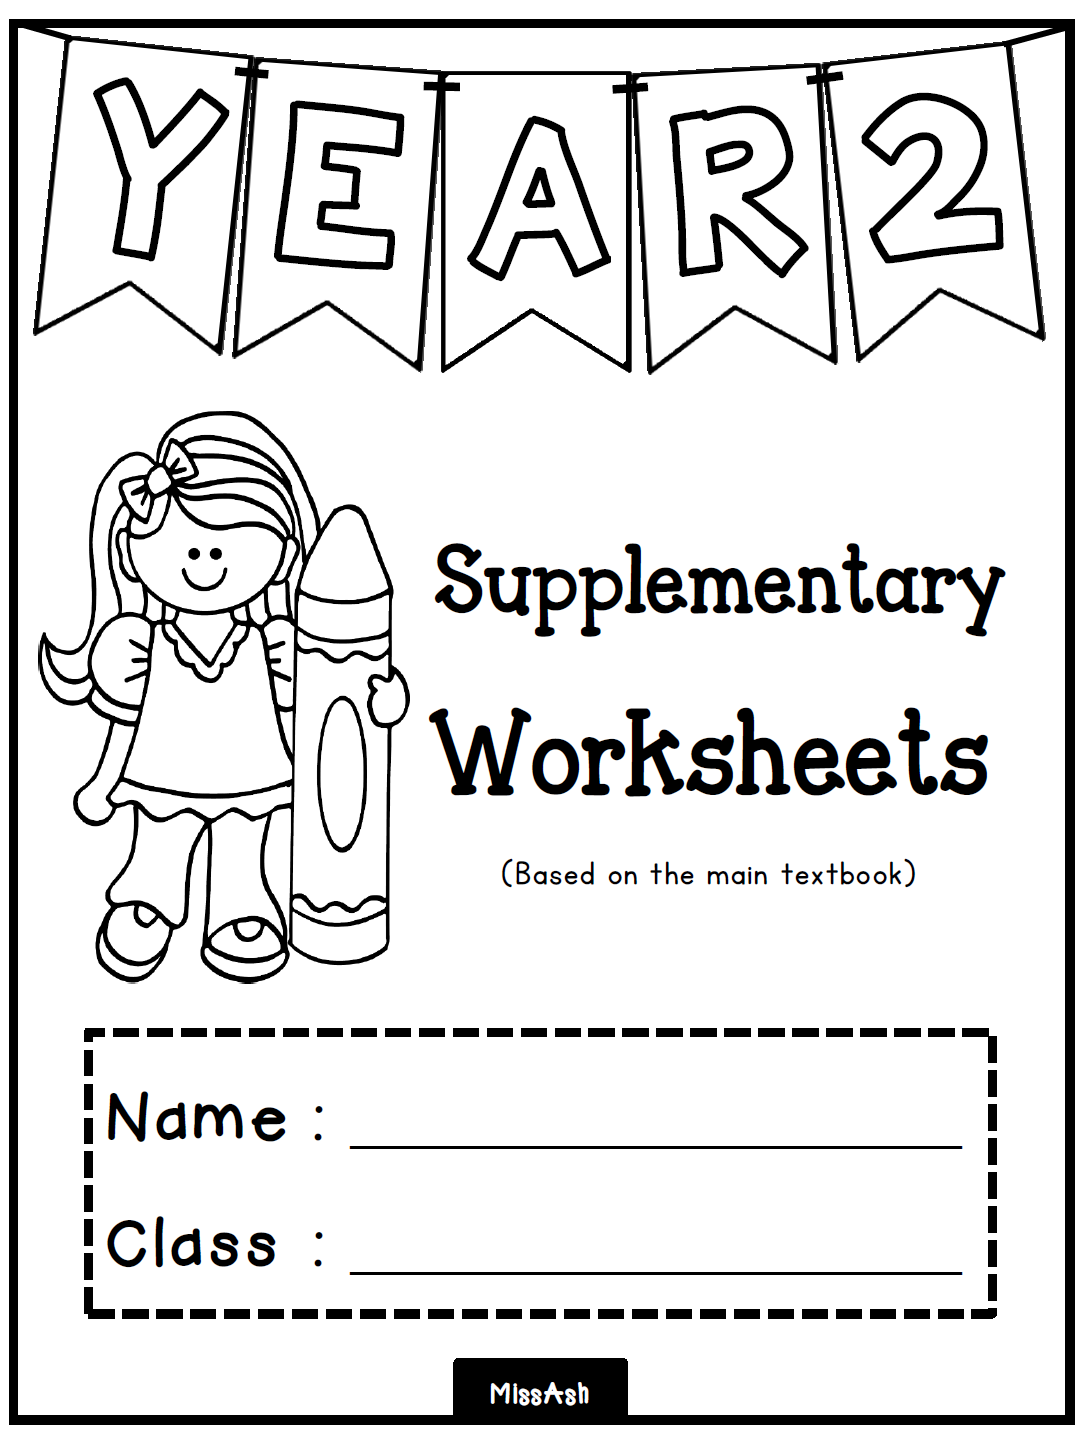 ASH THE TEACHER: YEAR 2 SUPPLEMENTARY WORKSHEETS (Unit 5 - 9)